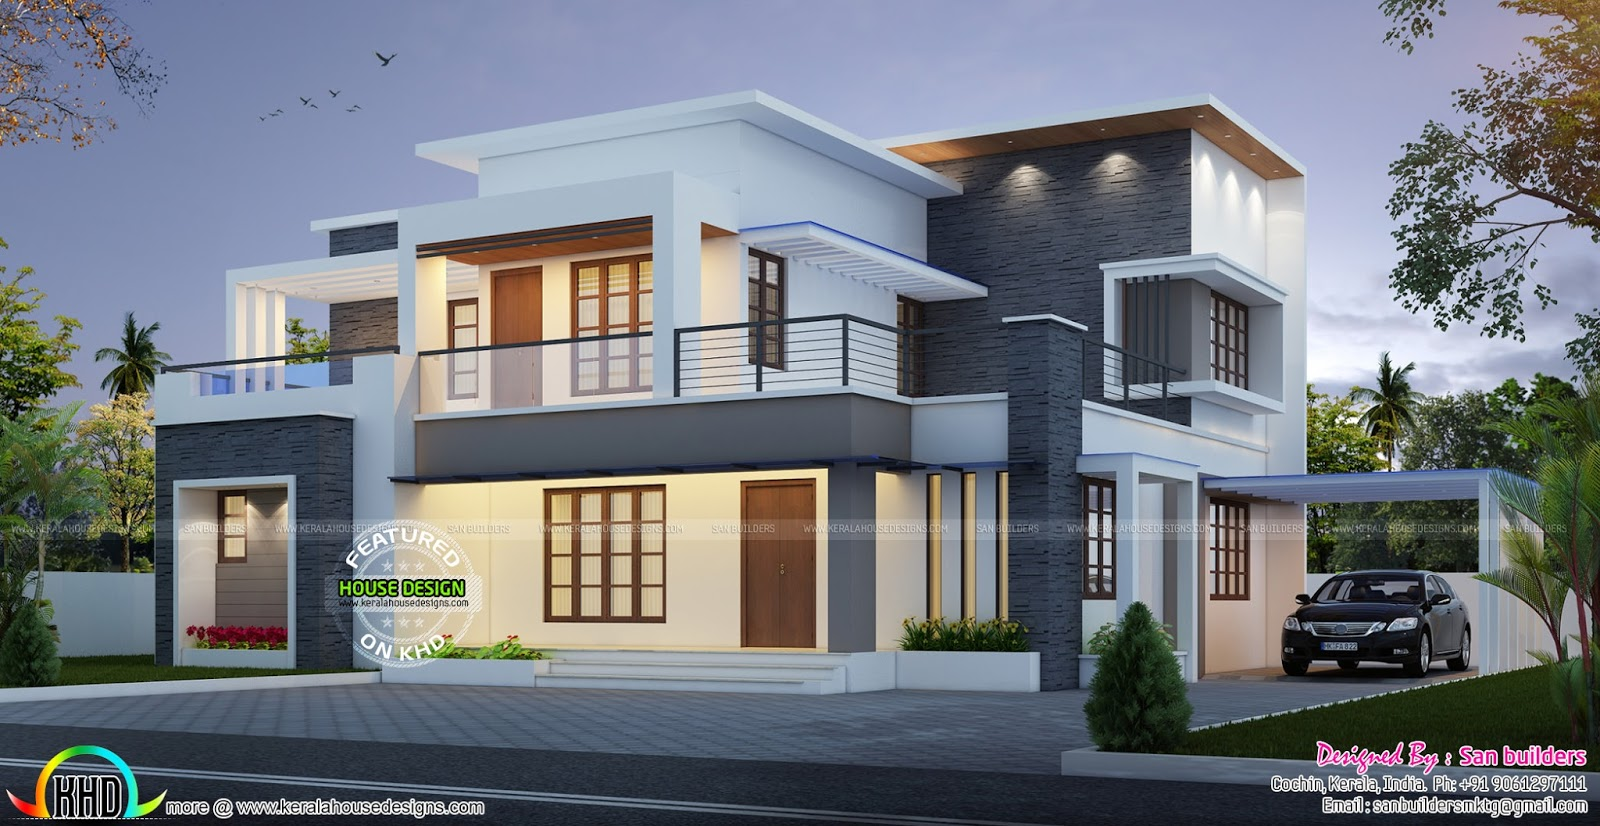 House plan and elevation by san builders kerala home New model contemporary house